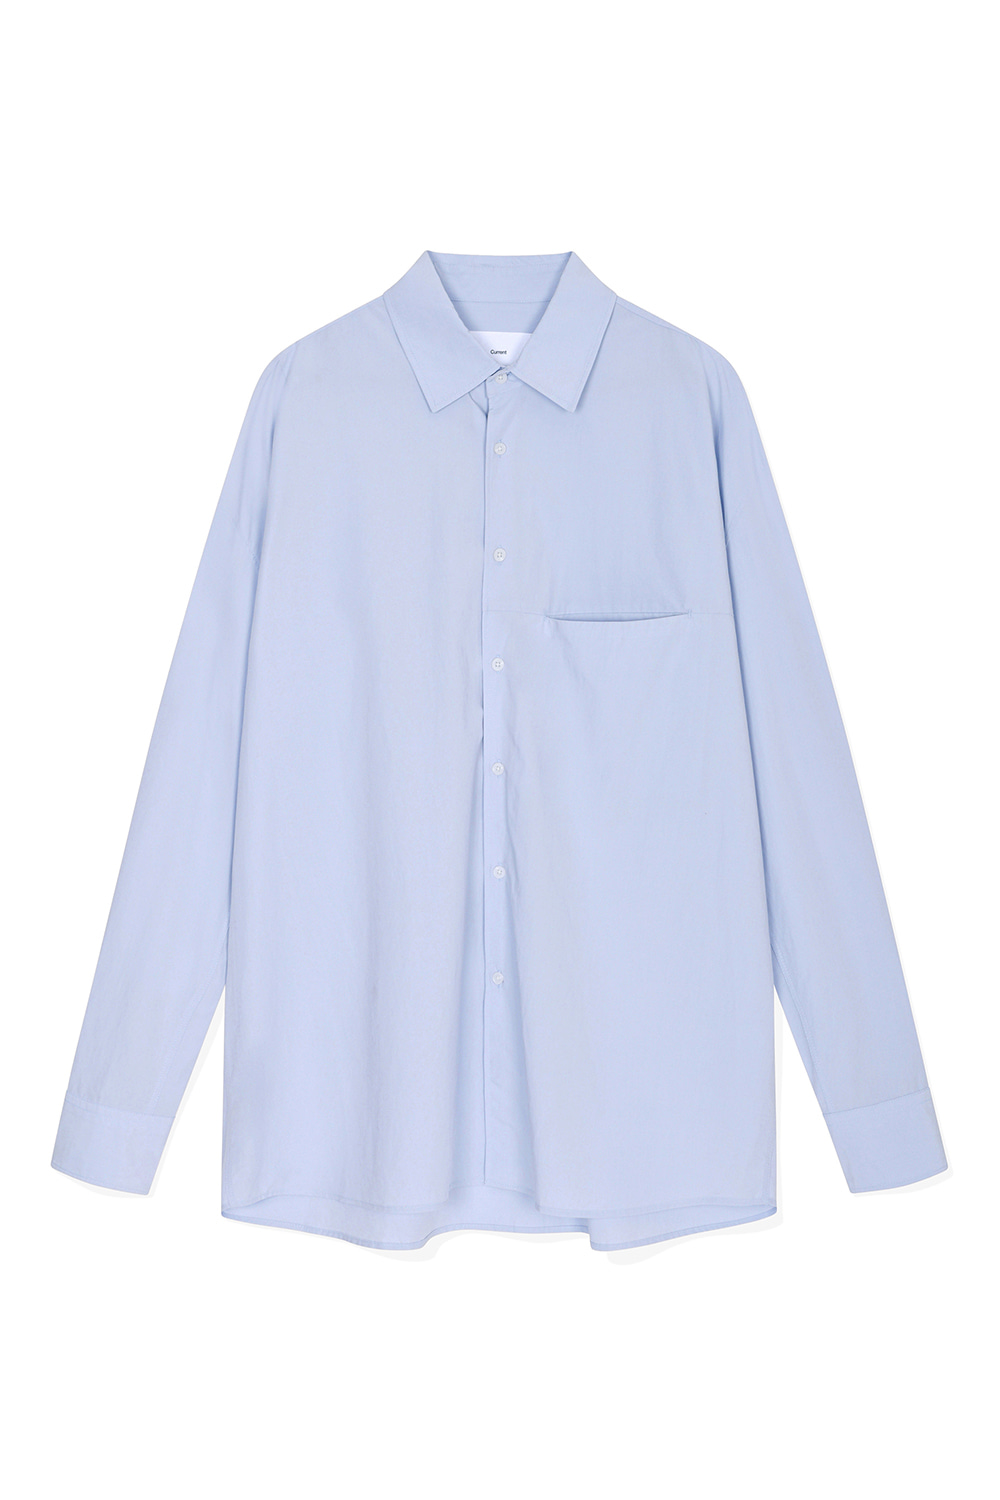 Overfit Shirts Men JA [Light Blue] -10%